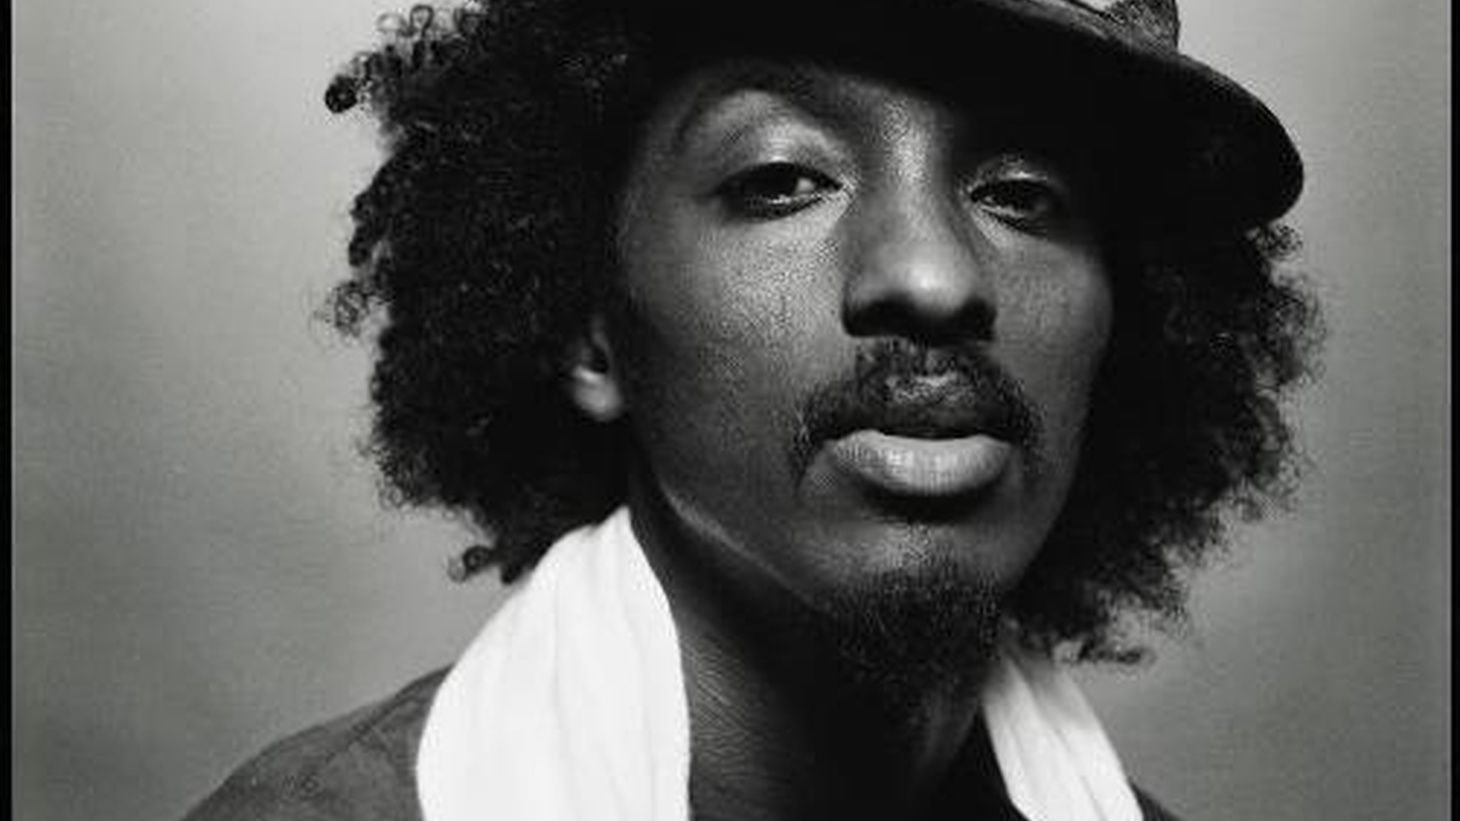 """Somalia is """"The Nation of Poets"""" and it's no wonder that emcee and musician K'naan got his start there..."""